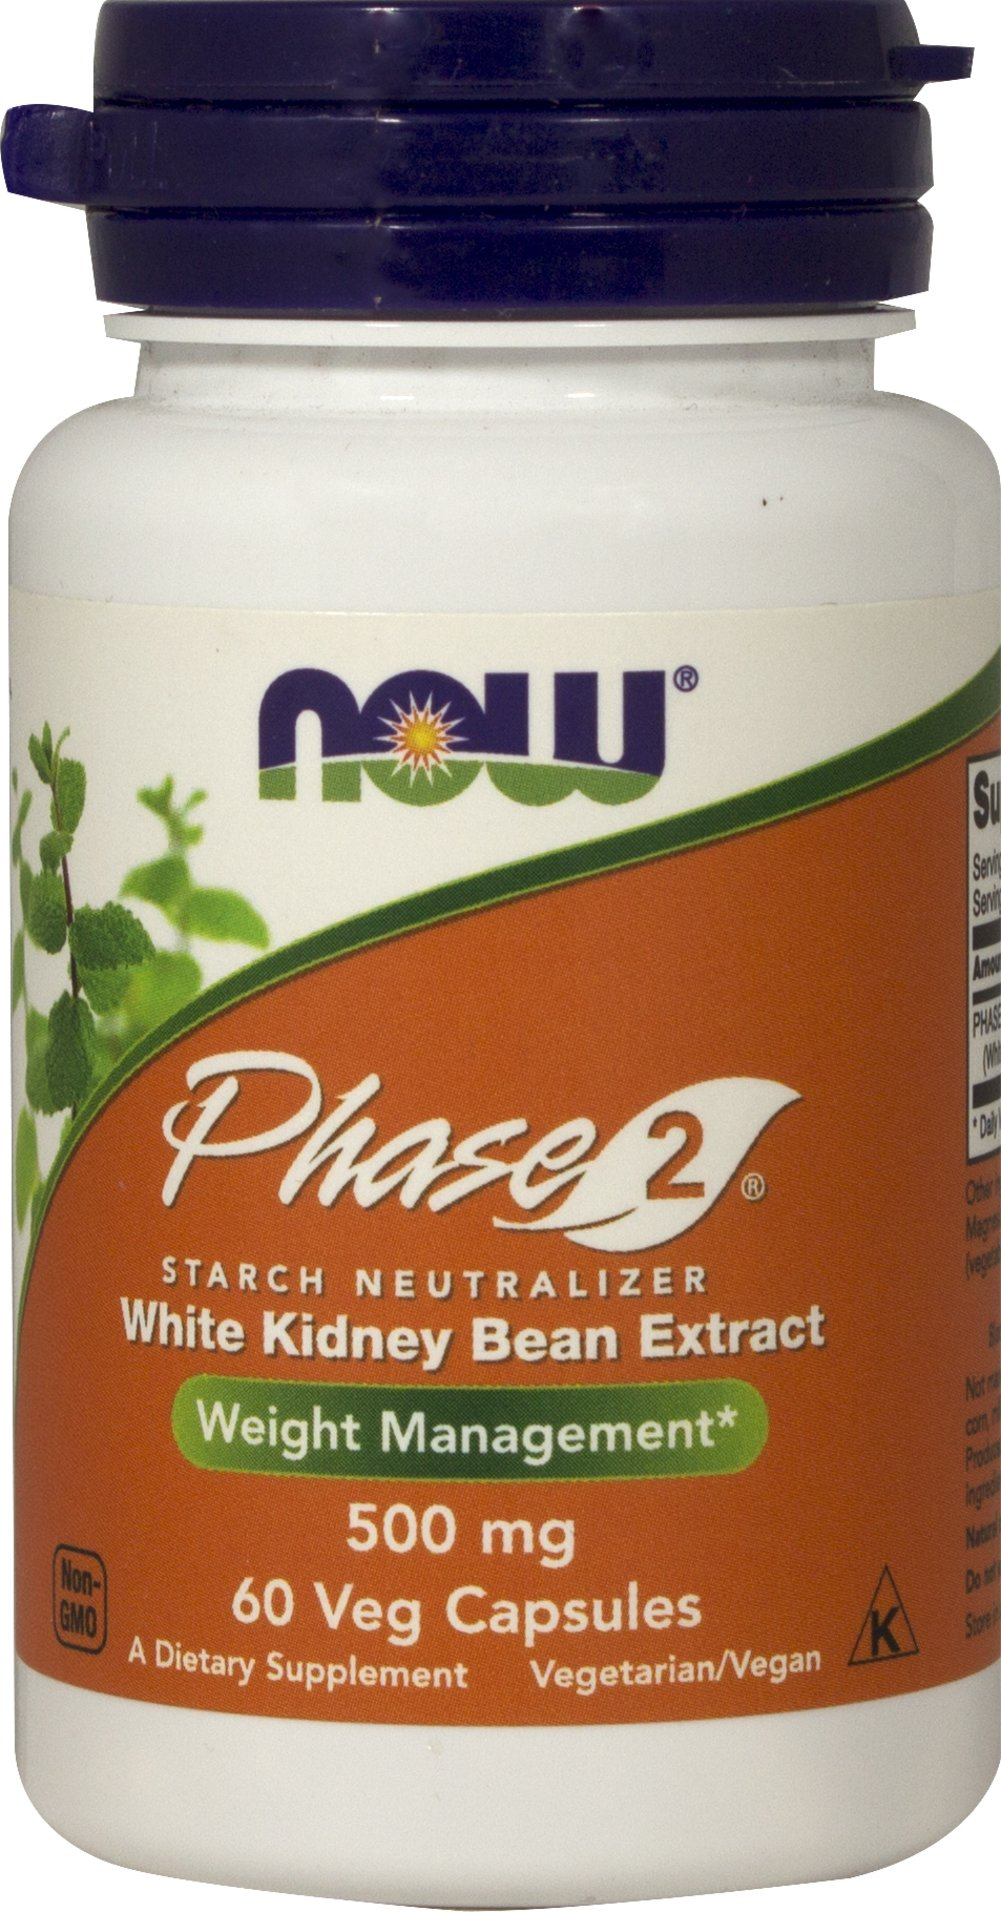 Phase 2 Starch Neutralizer  60 Vegi Caps 500 mg $10.49